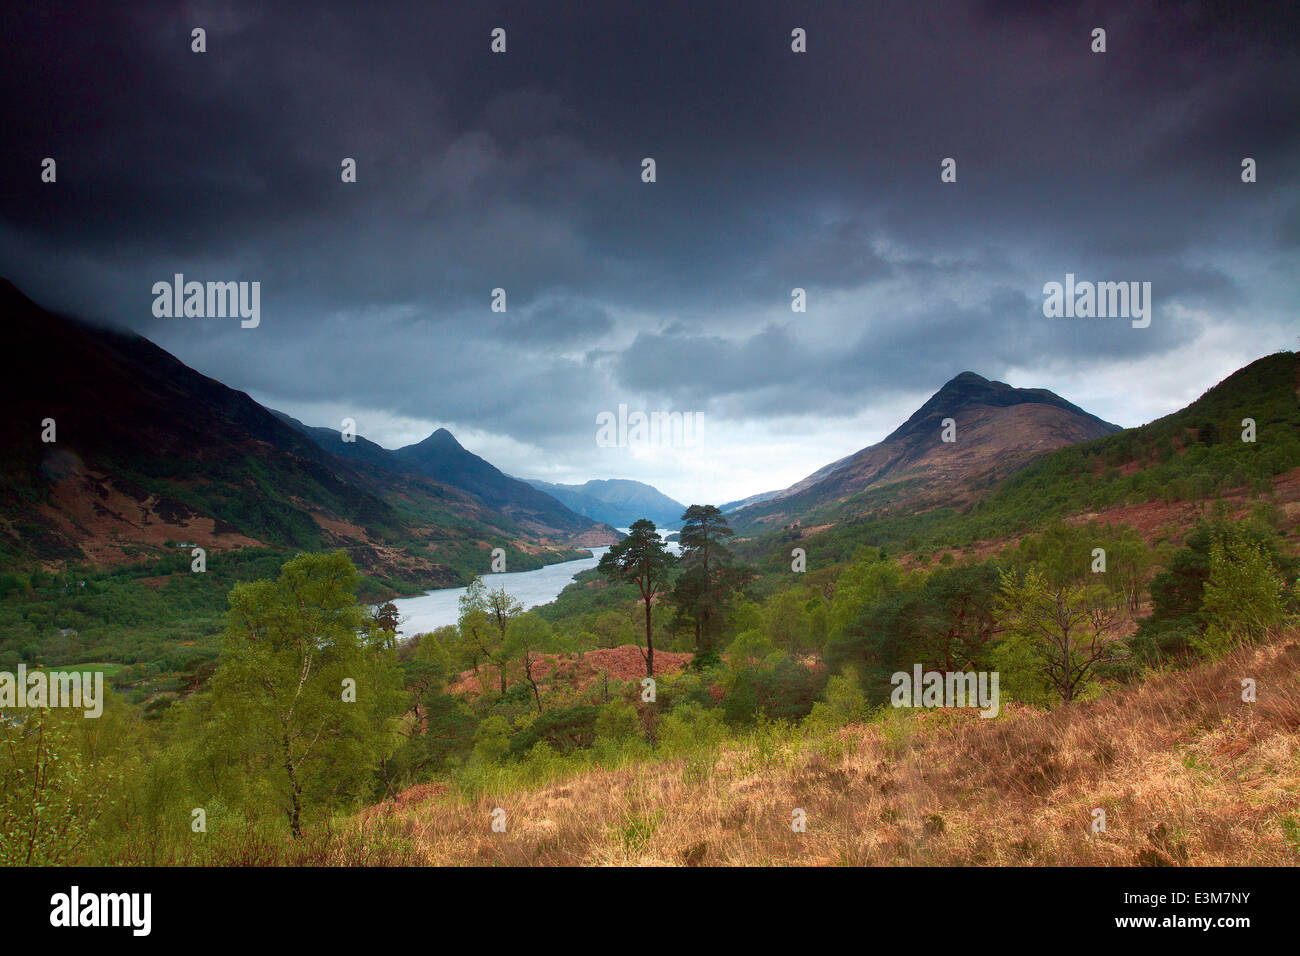 Loch Leven and Sgorr na Ciche from above Kinlochleven, Lochaber - Stock Image